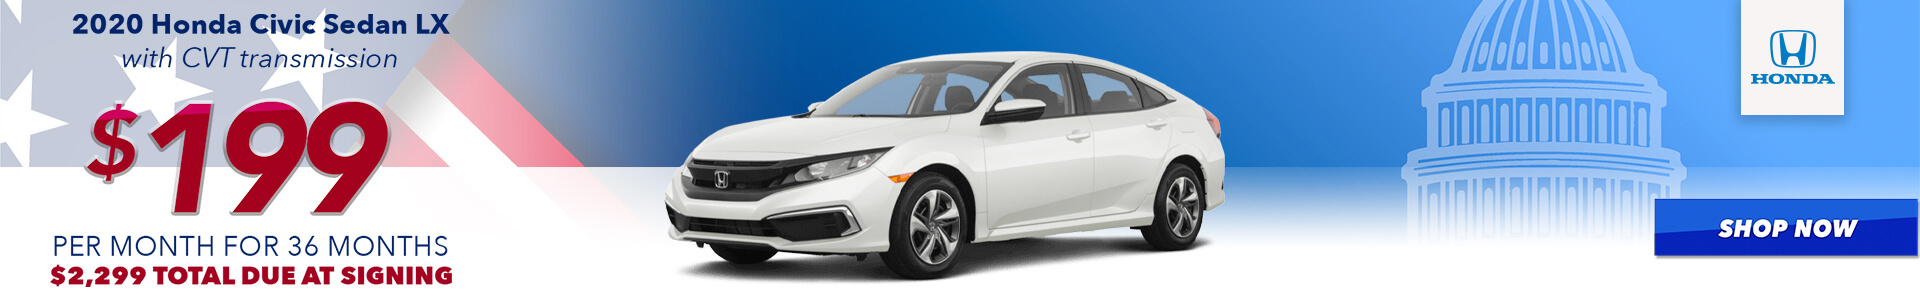 2020 Civic - Lease for $199